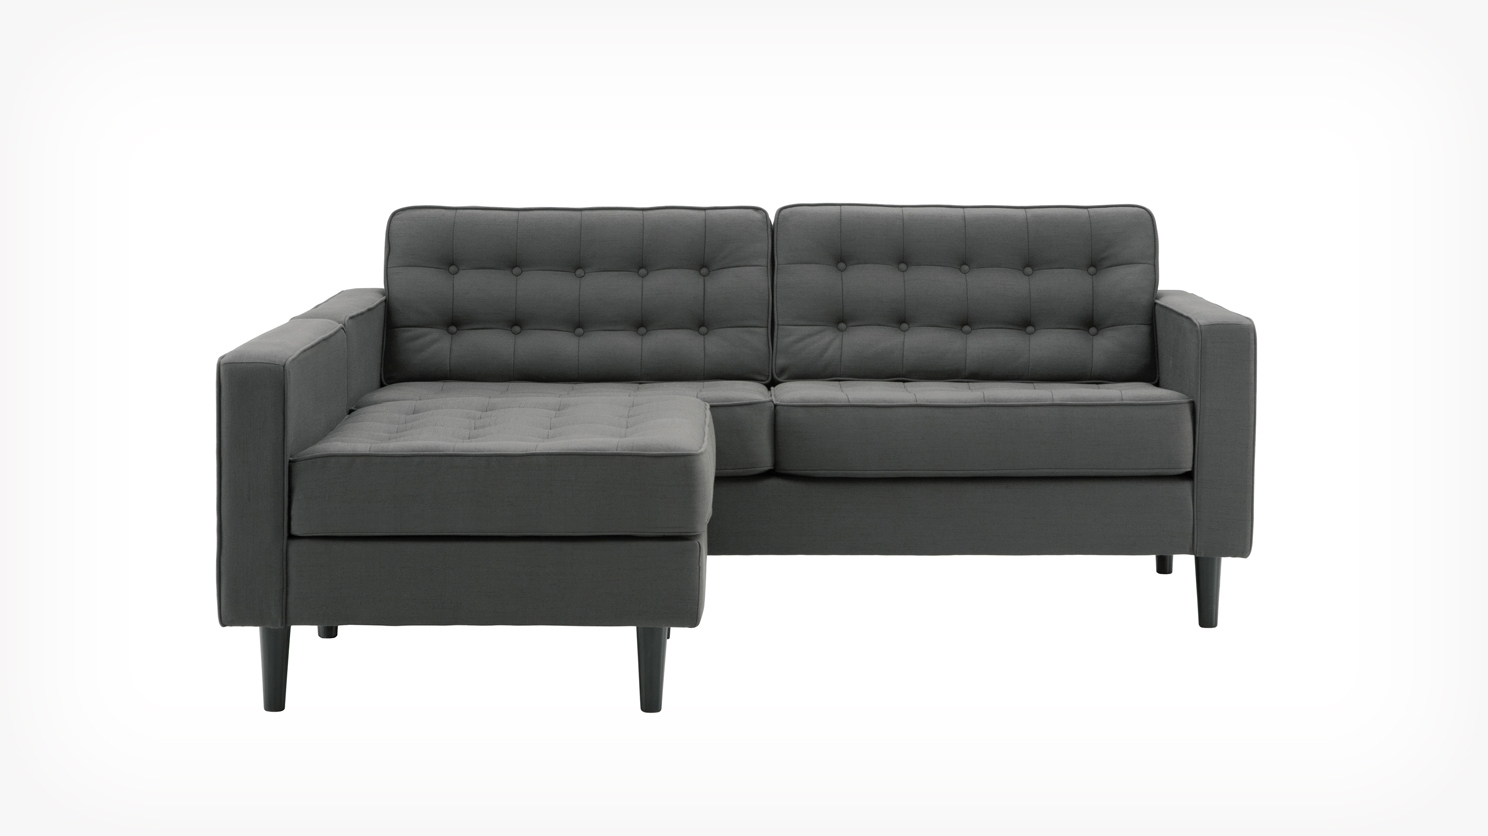 Fashionable Sectional Sofas That Come In Pieces In Eq (View 4 of 15)